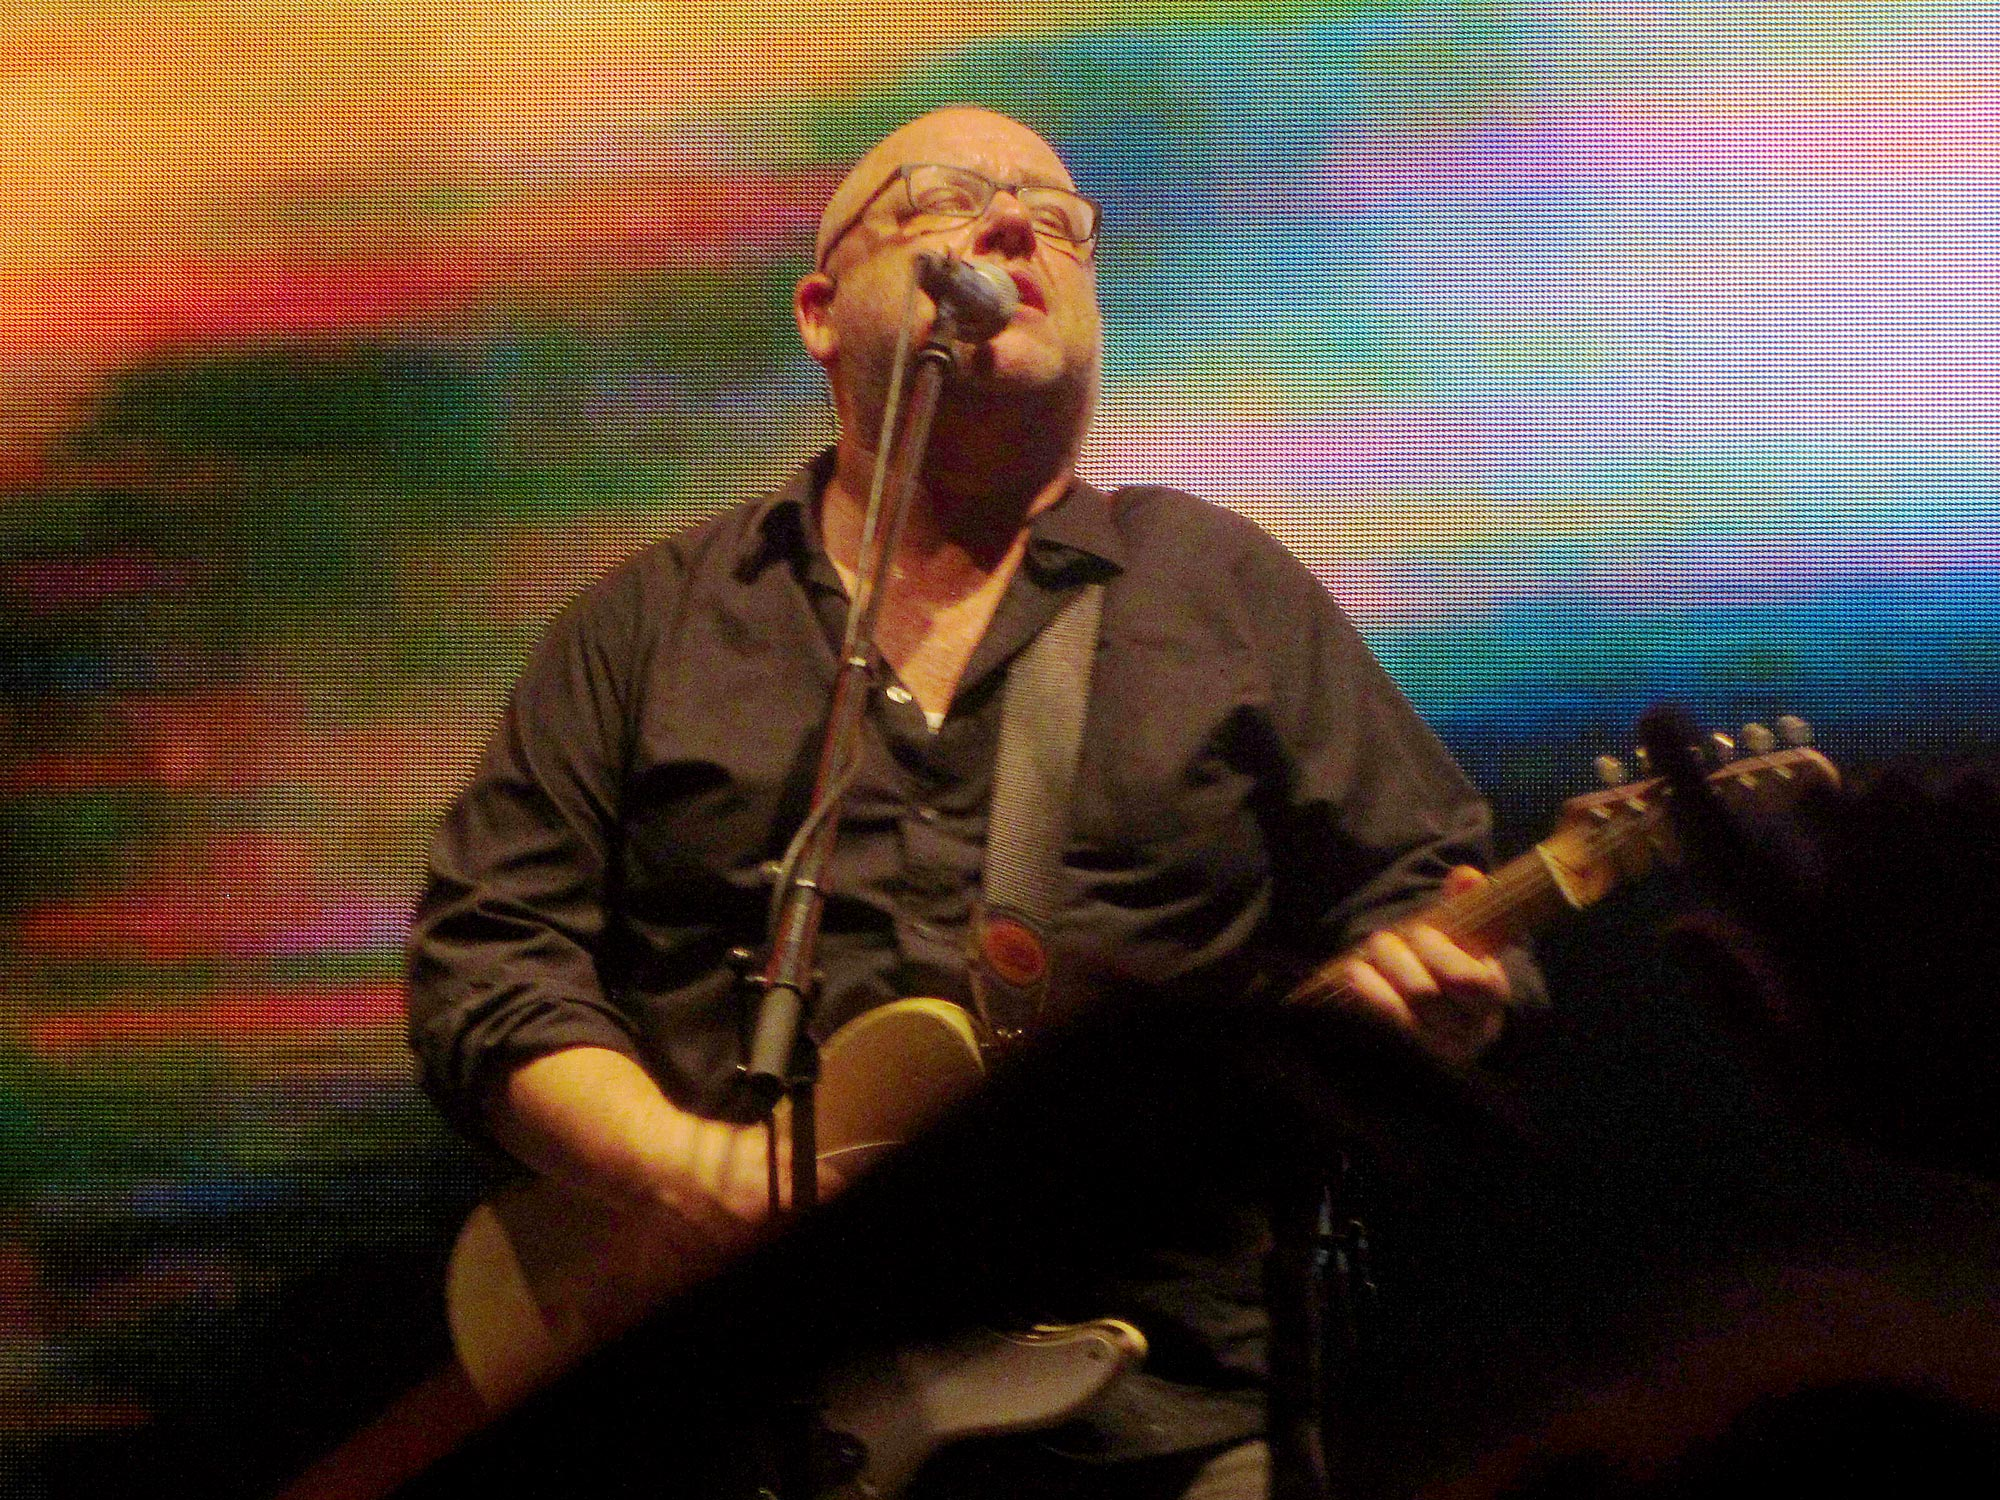 A bald man in glasses sings into a microphone whilst playing guitar. Behind him is a multicolour digital screen.